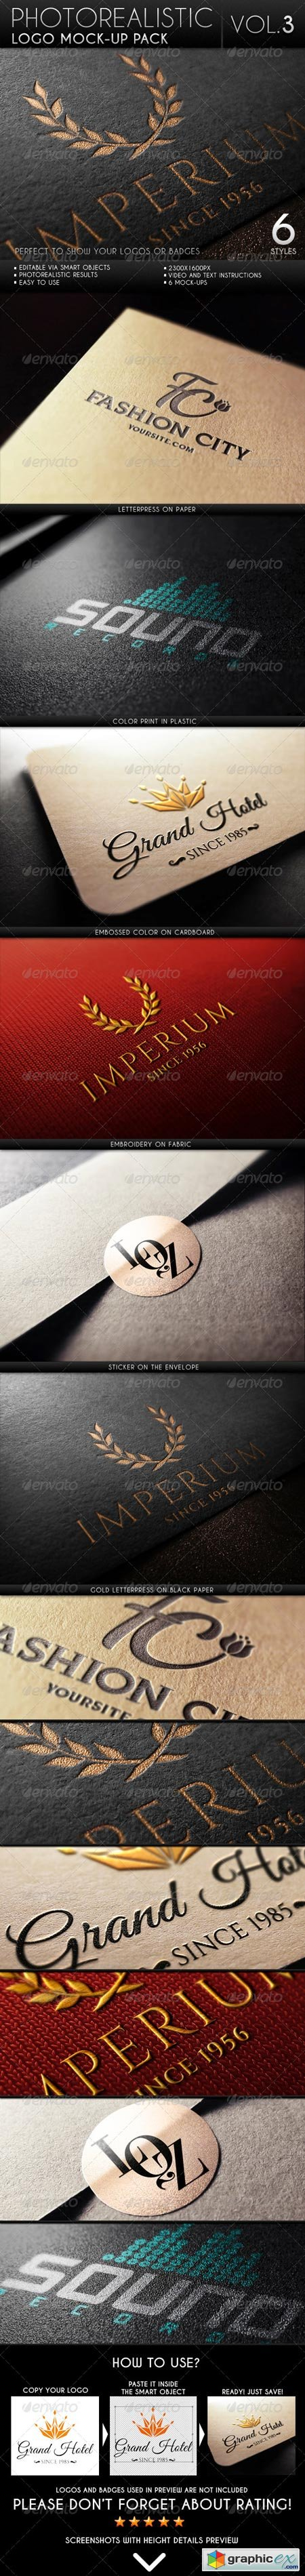 Photorealistic Logo Mock-Up Pack Vol.3 6627640